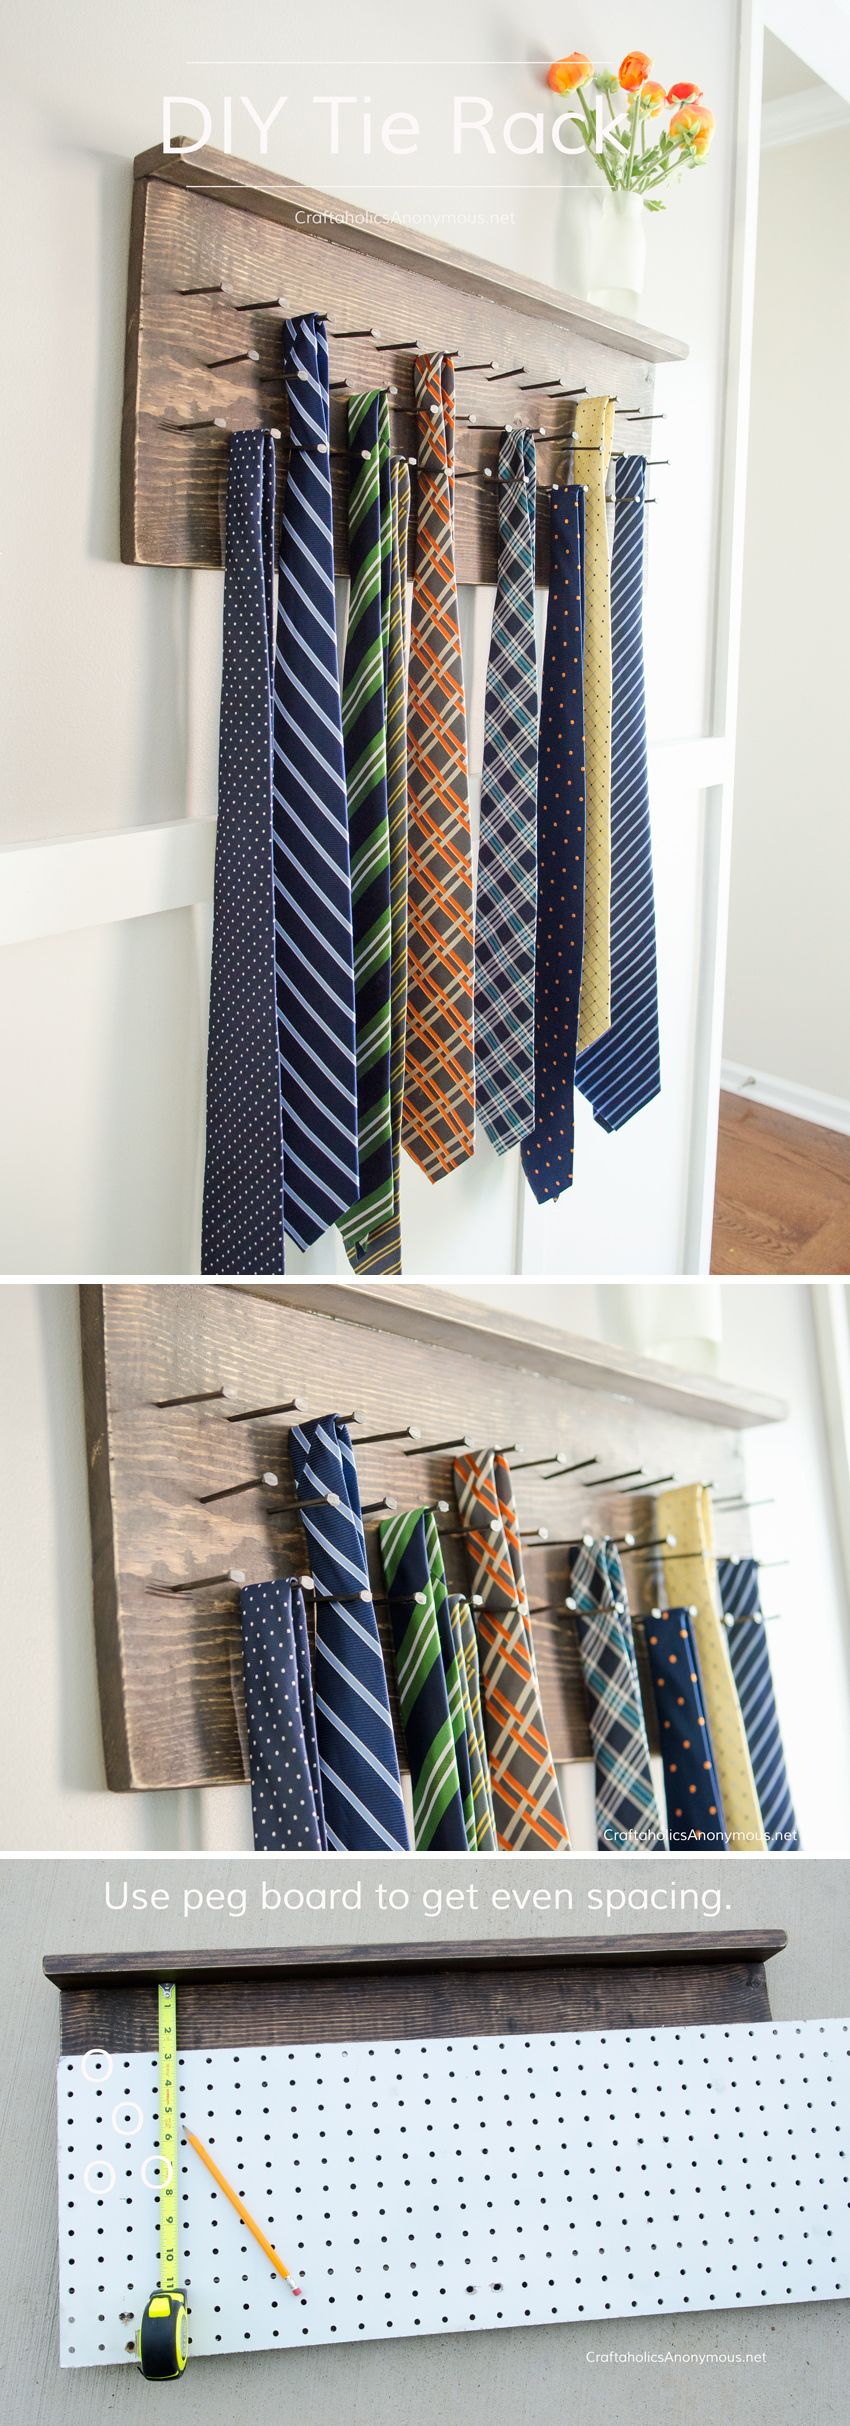 Diy Wood Tie Rack Tutorial Wouldn T This Make A Great Father S Day Gift Love The Peg Board Tip